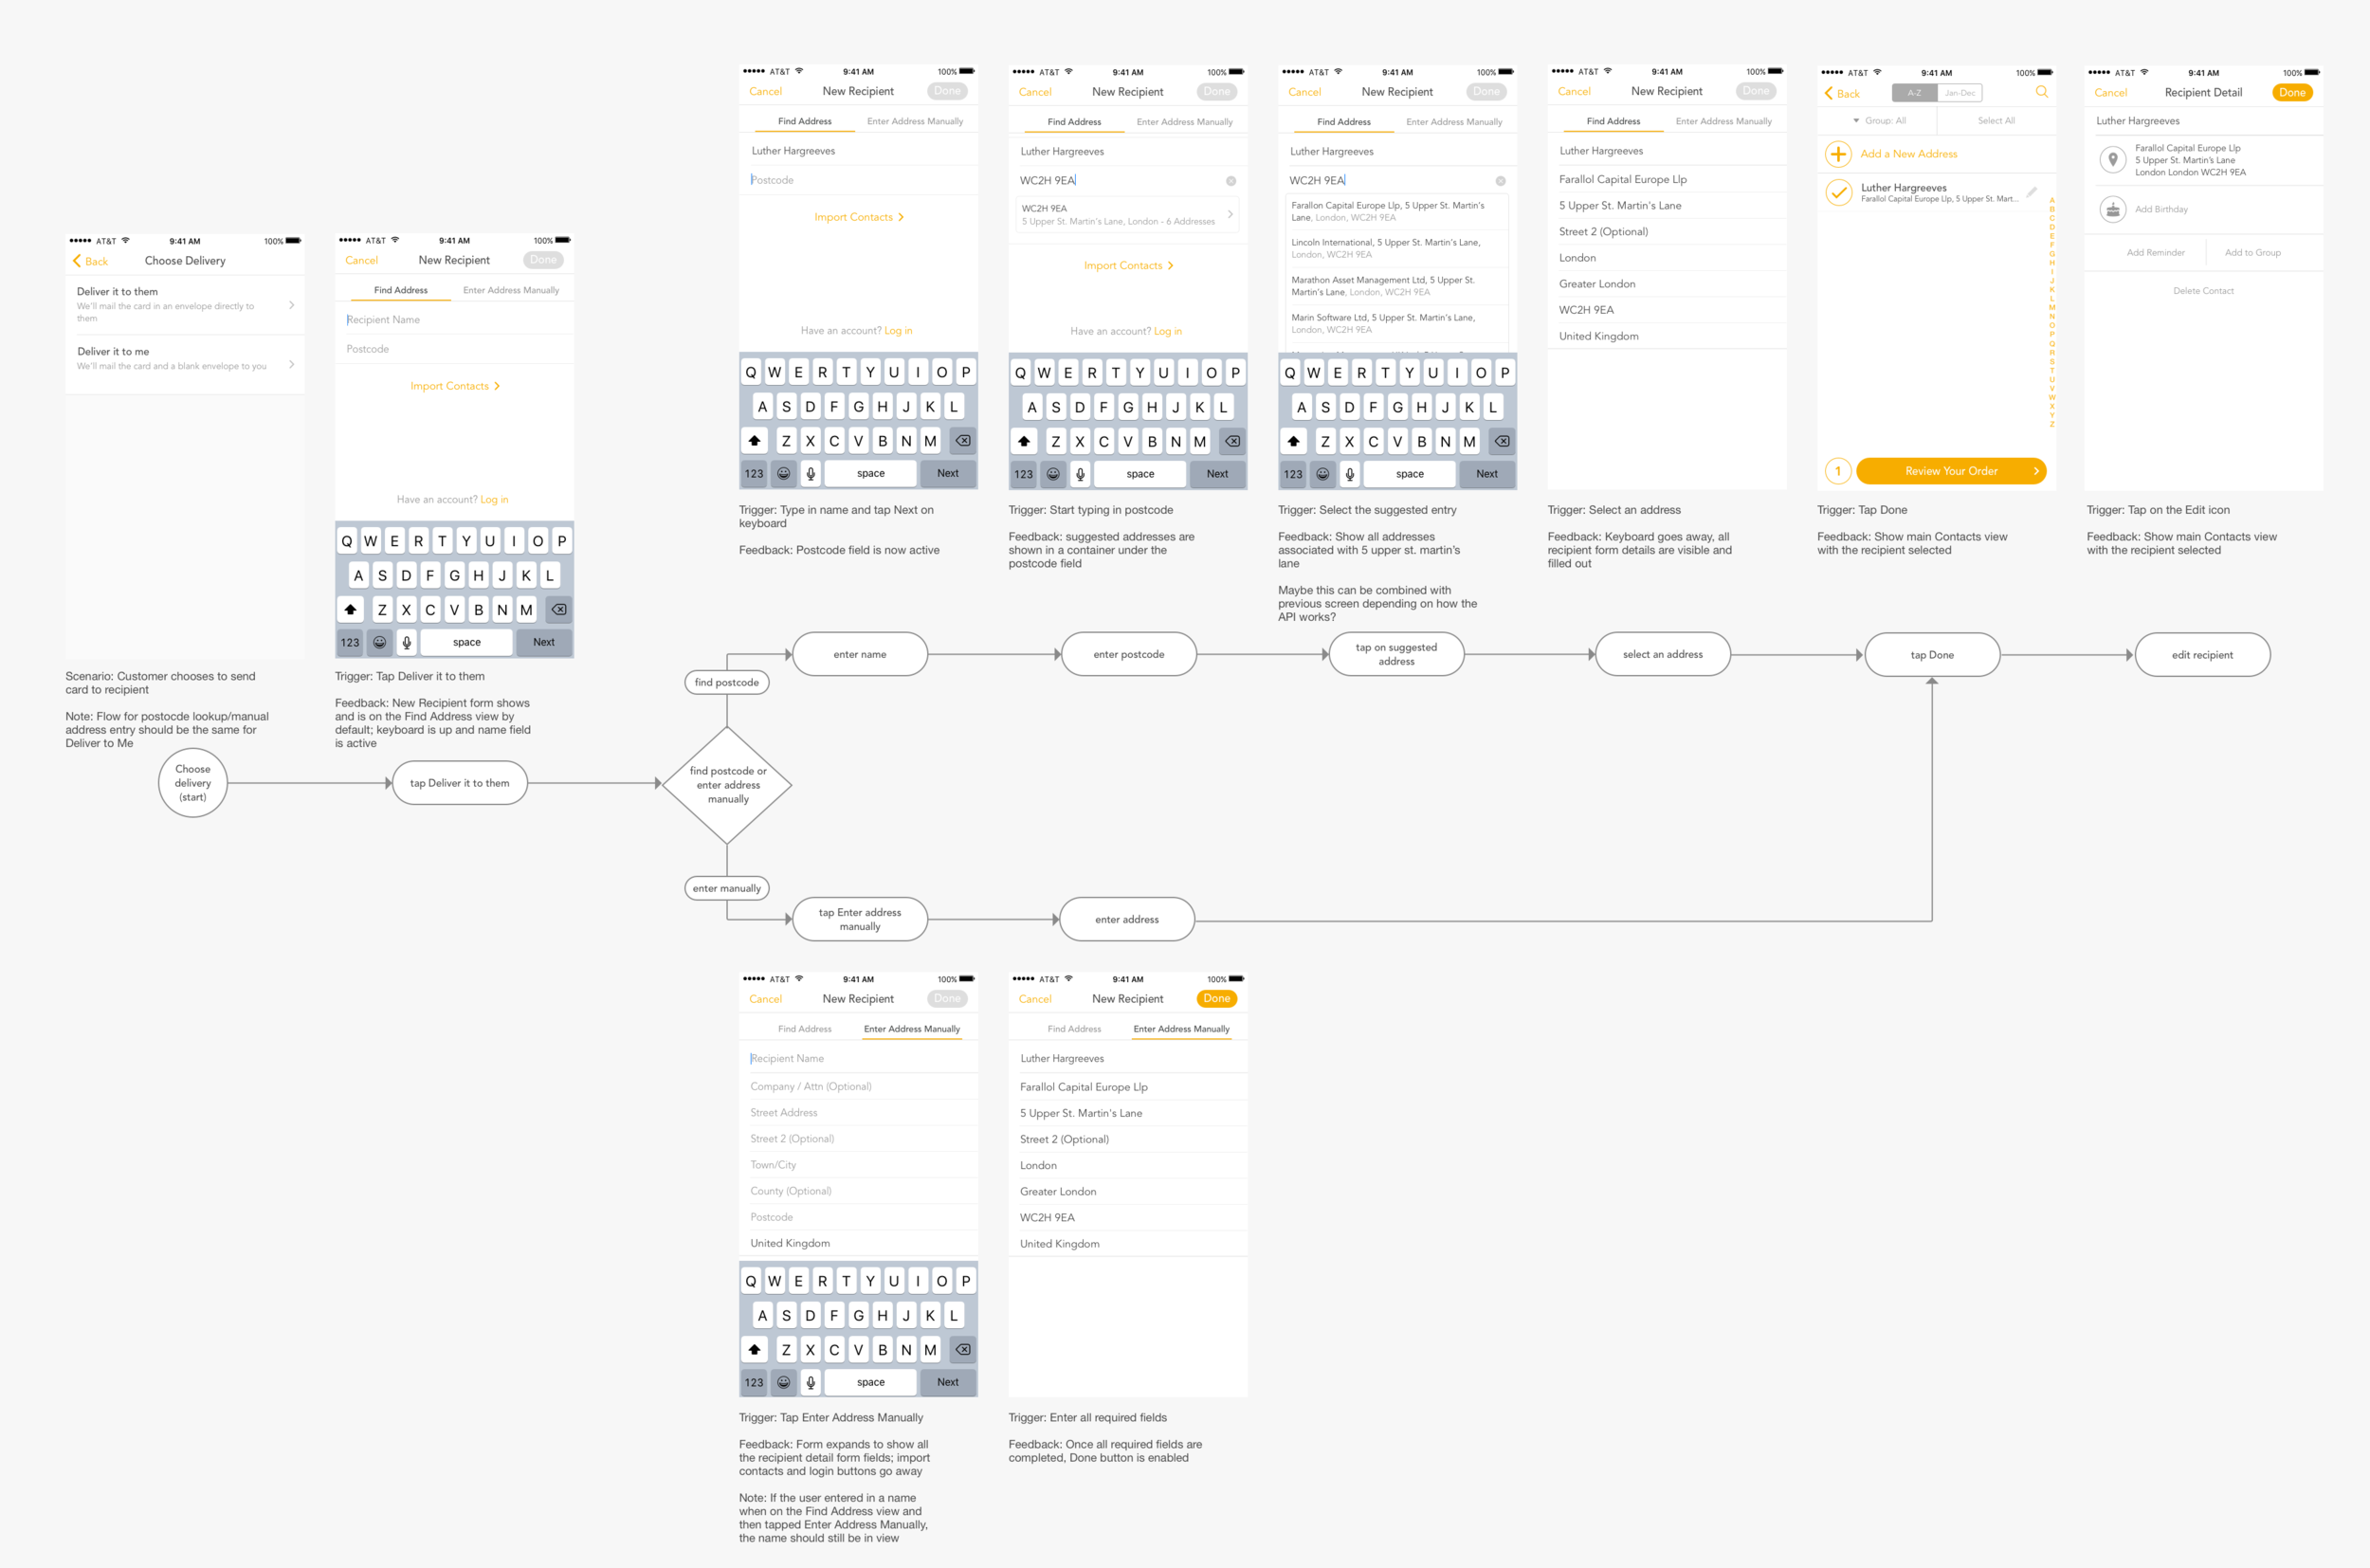 A task flow I created for the postcode lookup flow.